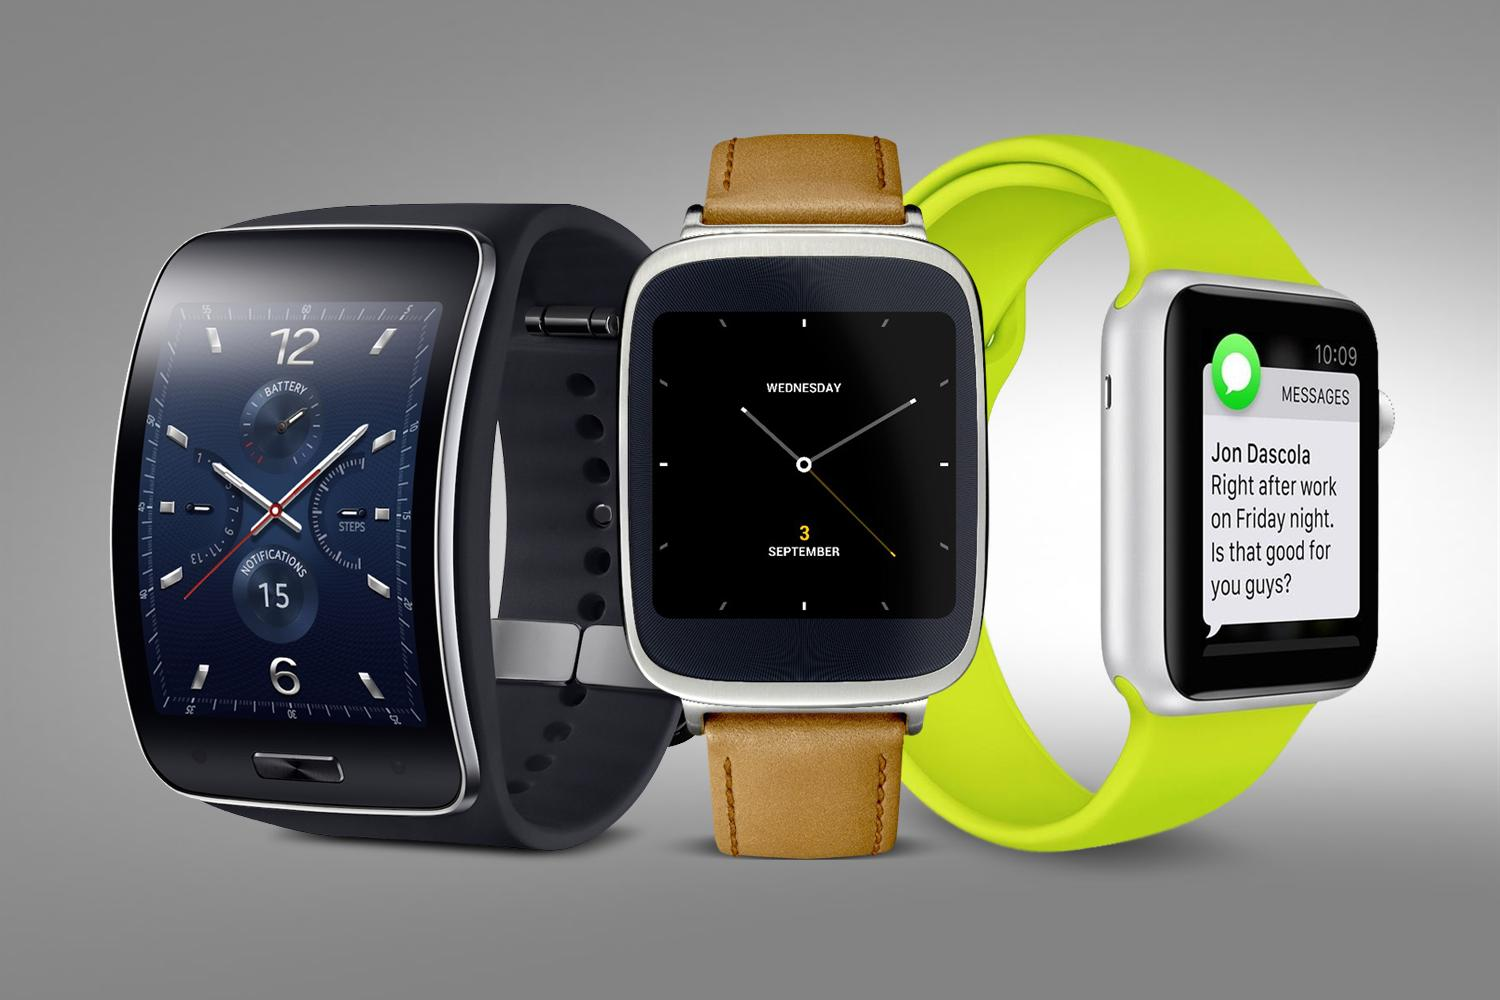 watches smart gear apple wearable computer here that to pin watch wearables and discover uncover